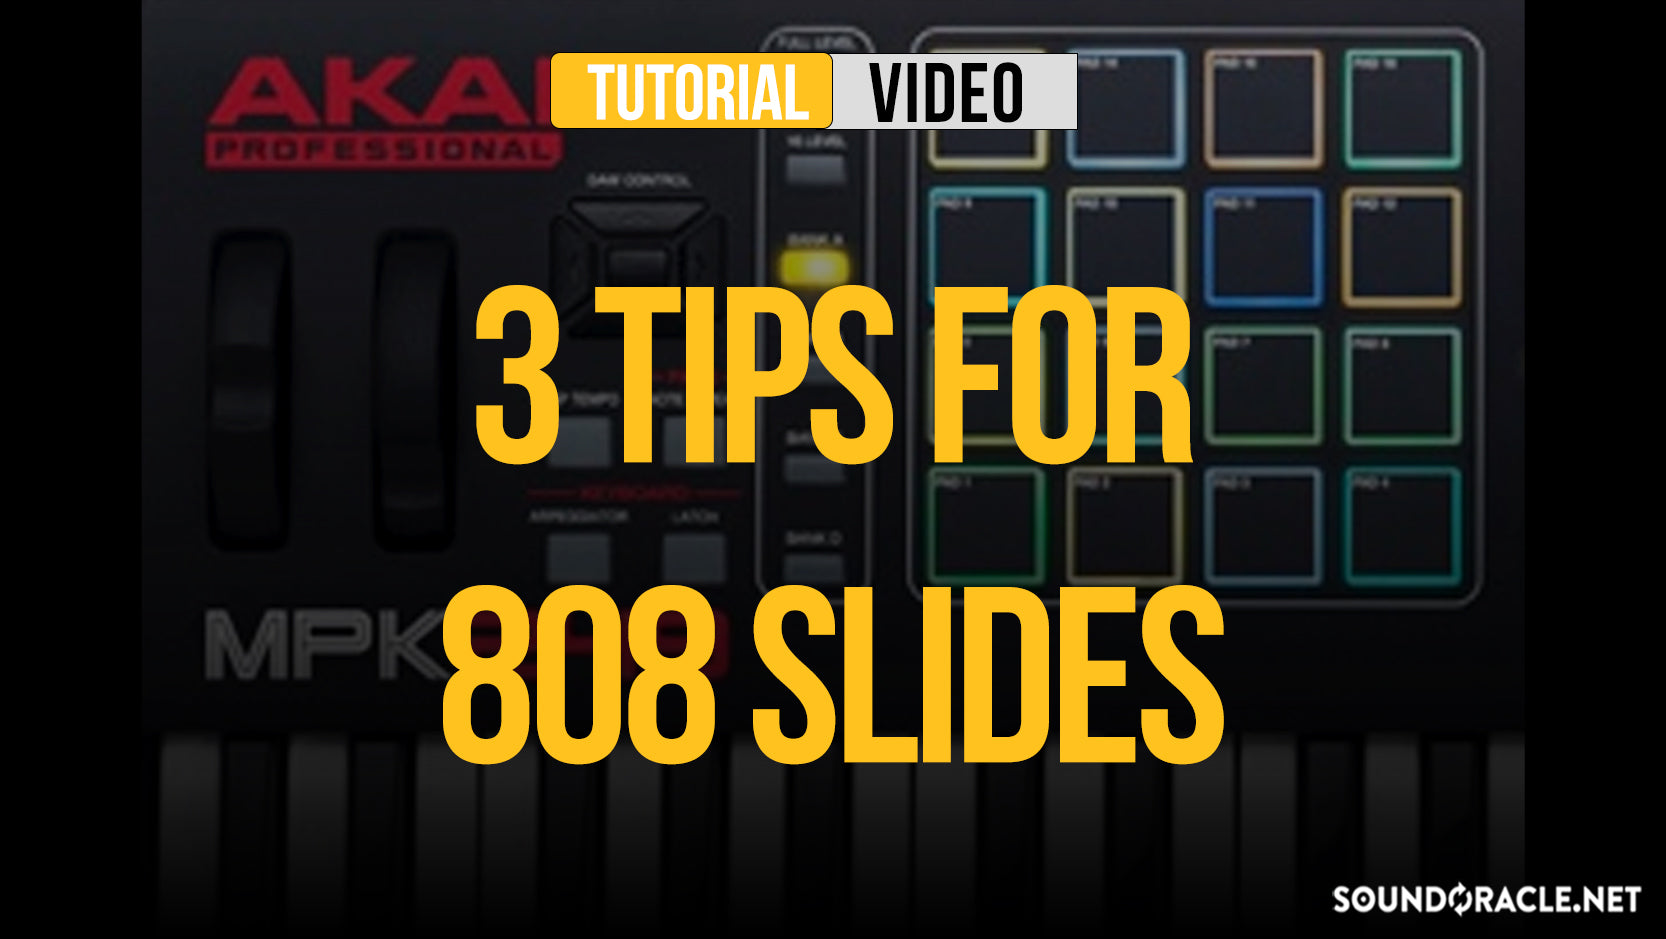 3 Tips For 808 Slides